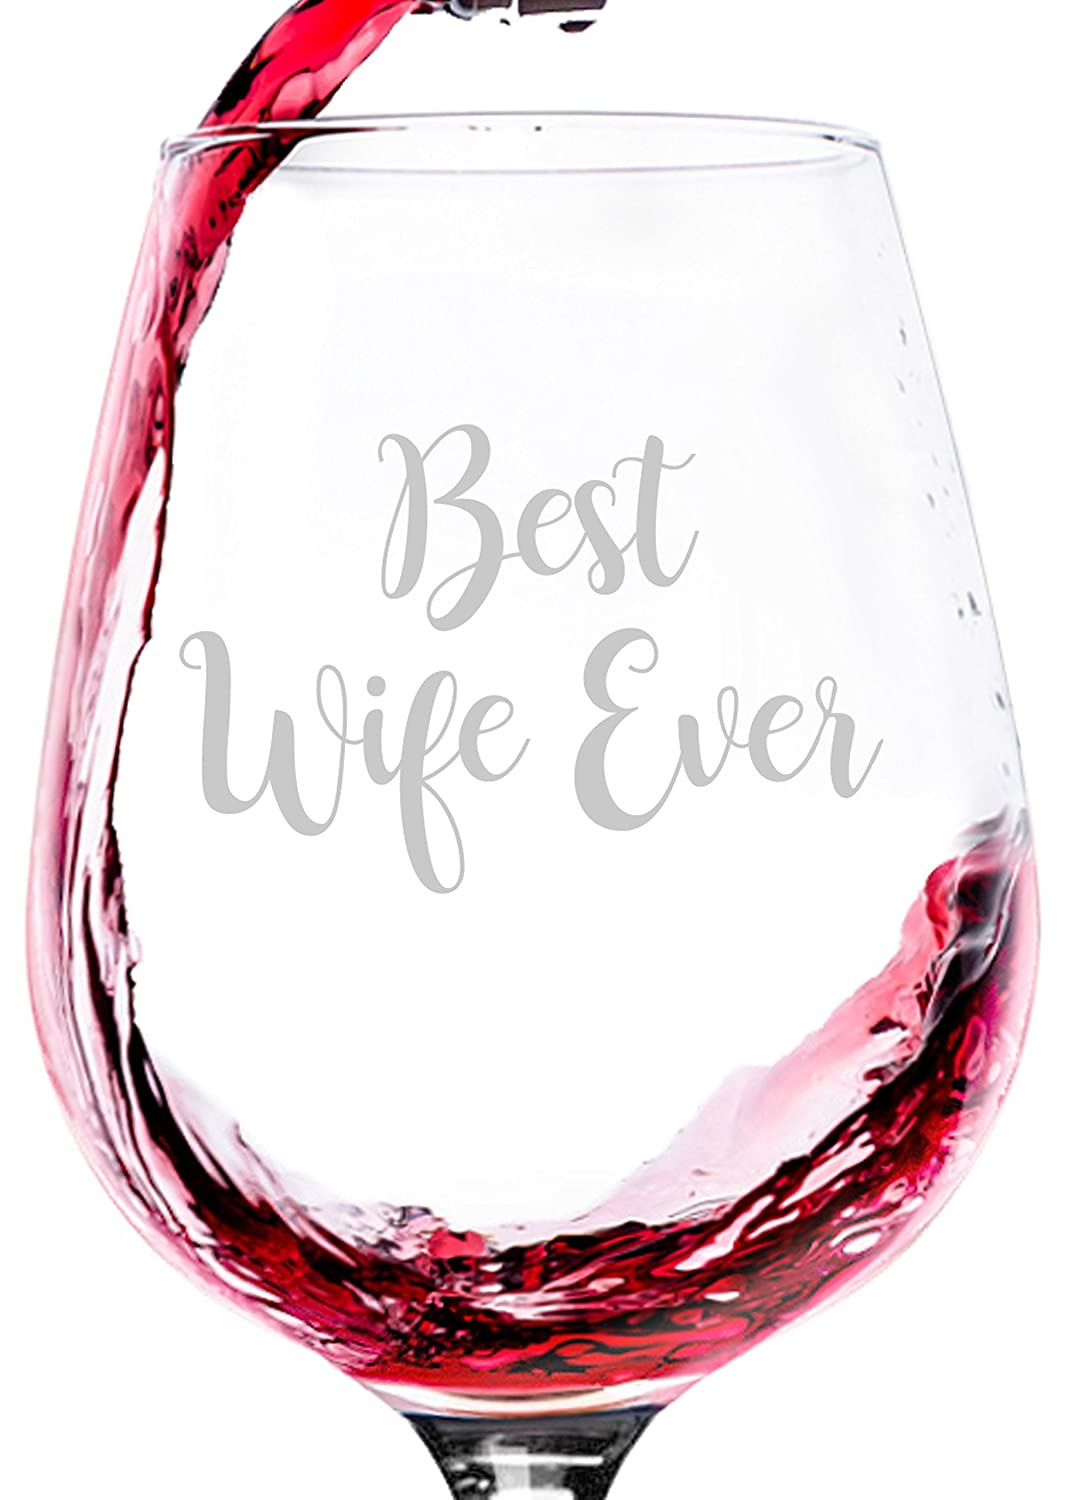 Best Wife Ever Wine Glass - Unique Birthday or Anniversary Gift For Women, Her - Cool Mothers Day Gift Idea From Husband - Fun Novelty Present For the Mrs, Wifey, Partner, or Newlywed - 13 oz BWEWG